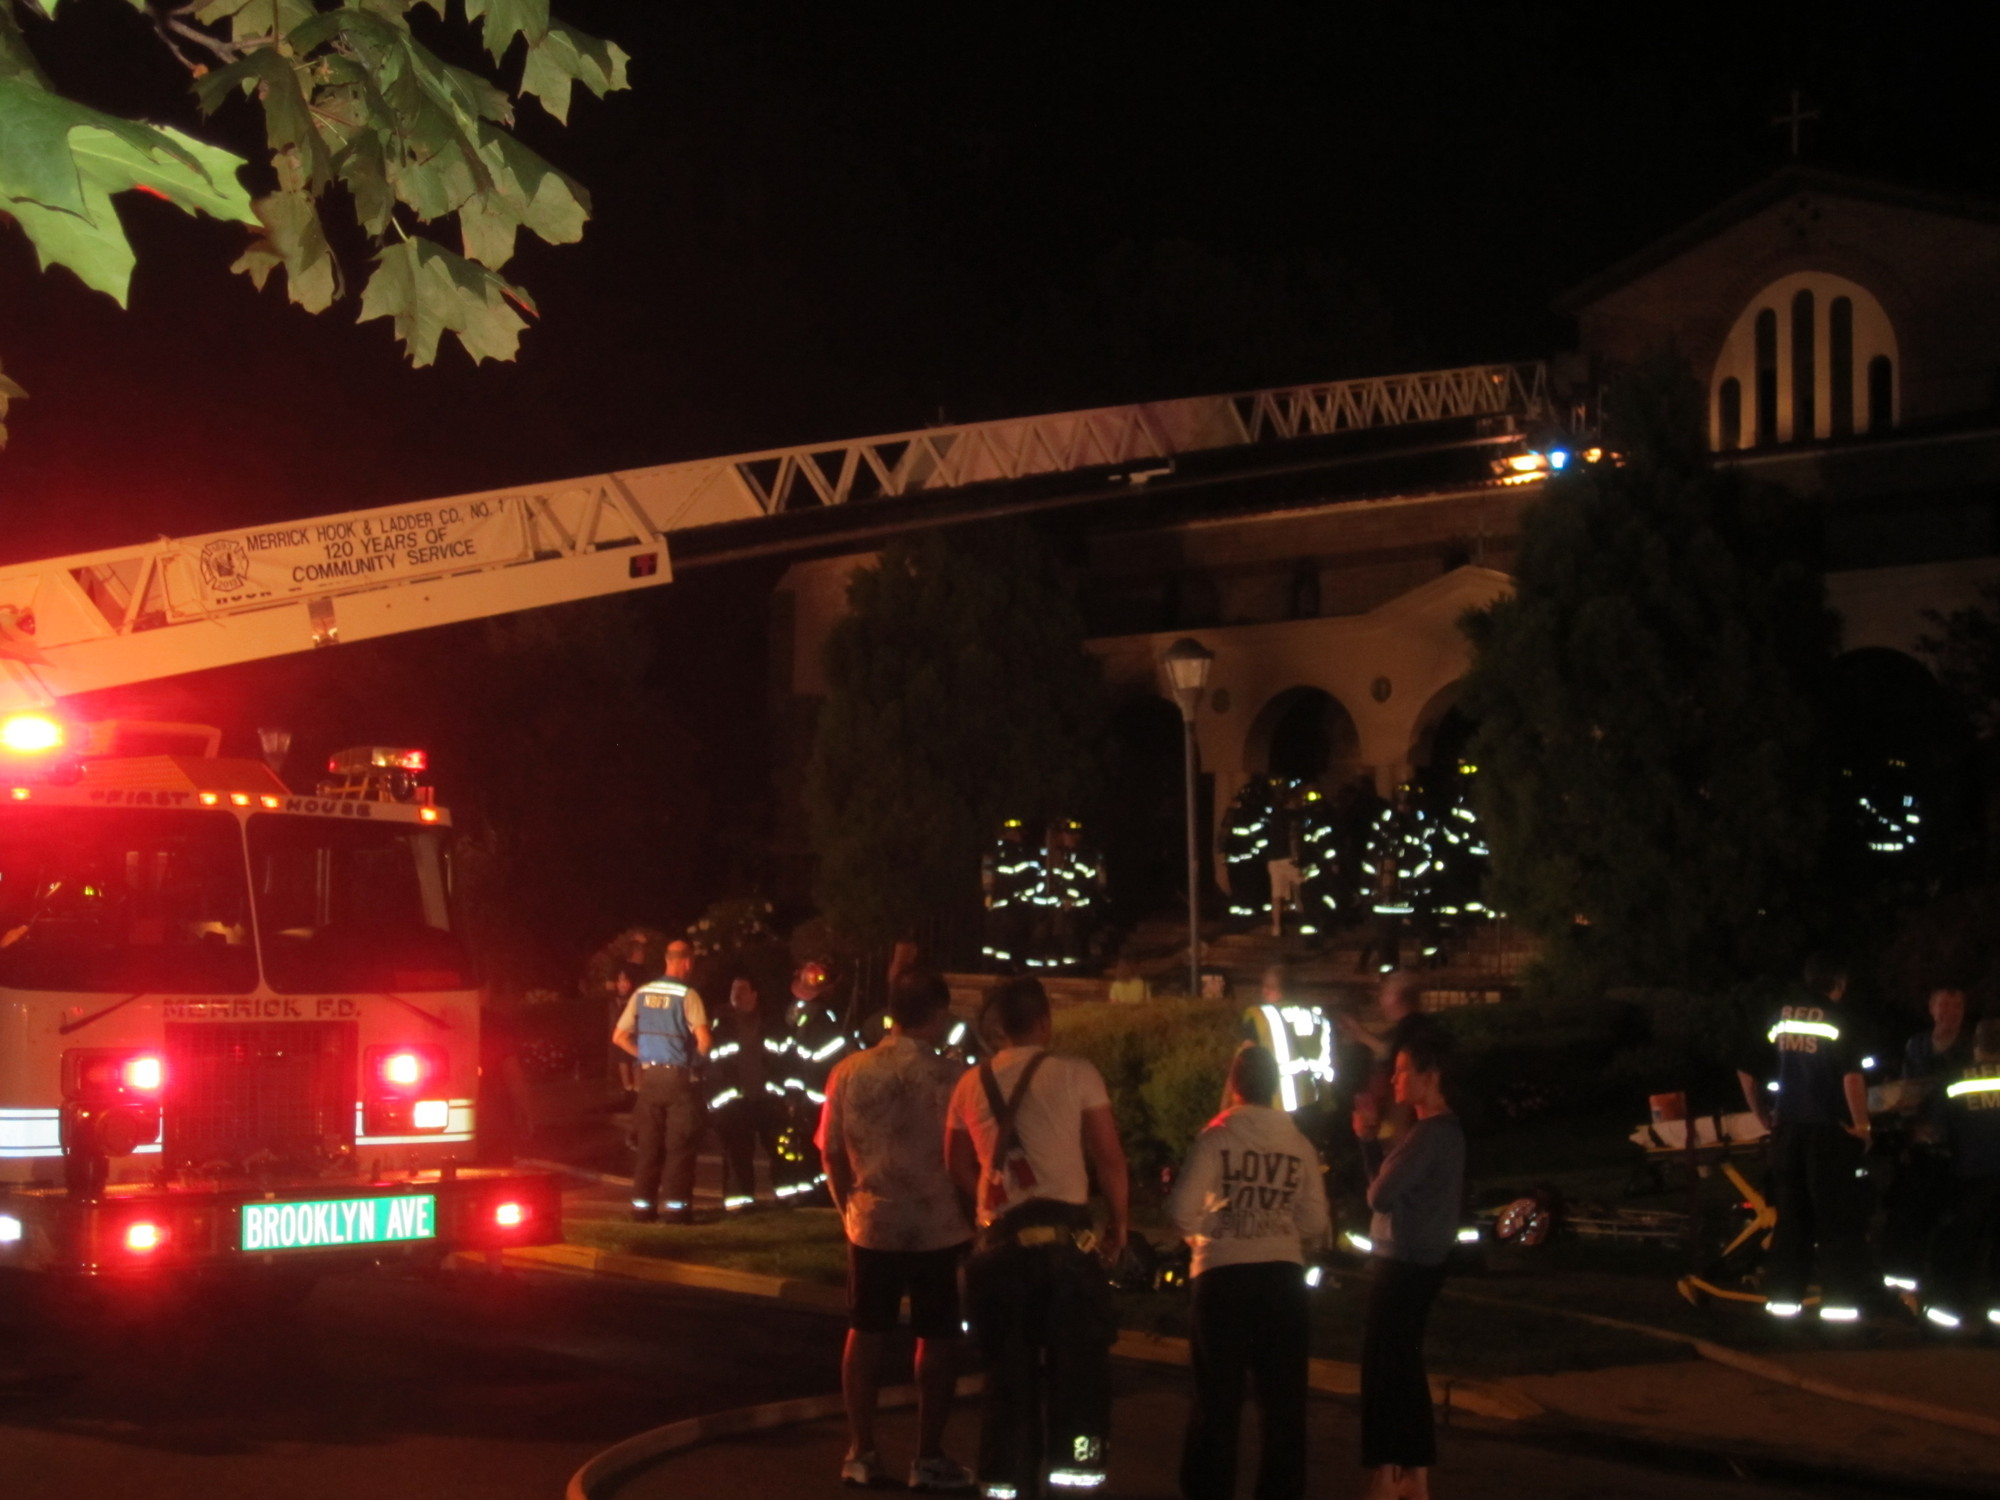 Merrick firefighters battled a fierce blaze at St. Demetrios Greek Orthodox Church on Hewlett Avenue on Friday.